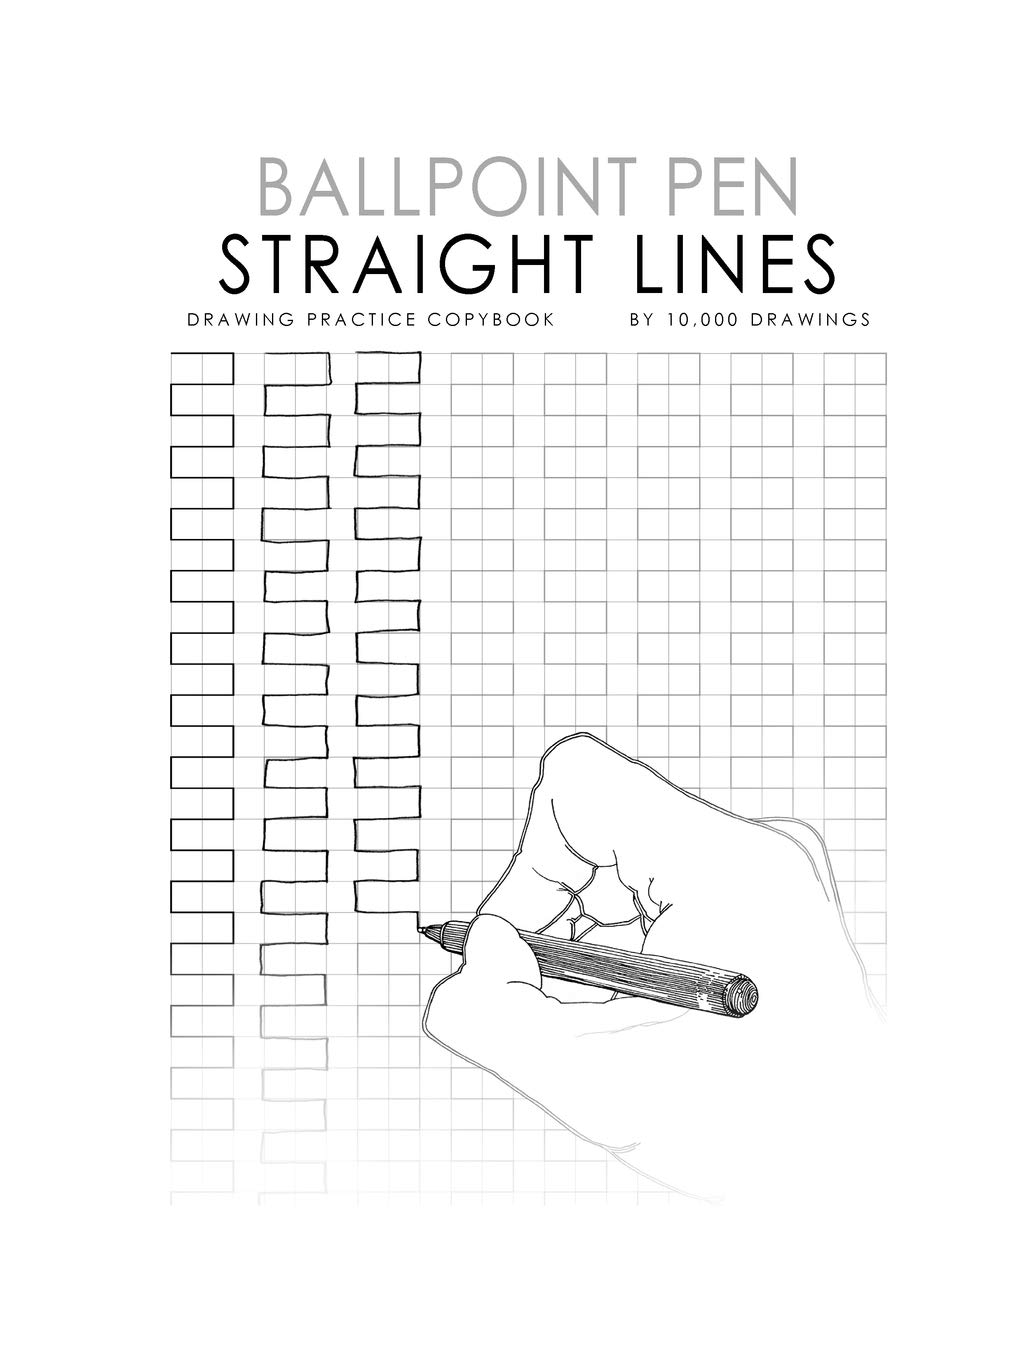 Stupendous Ballpoint Pen Straight Lines Drawing Practice Copybook 10000 Wiring Digital Resources Minagakbiperorg